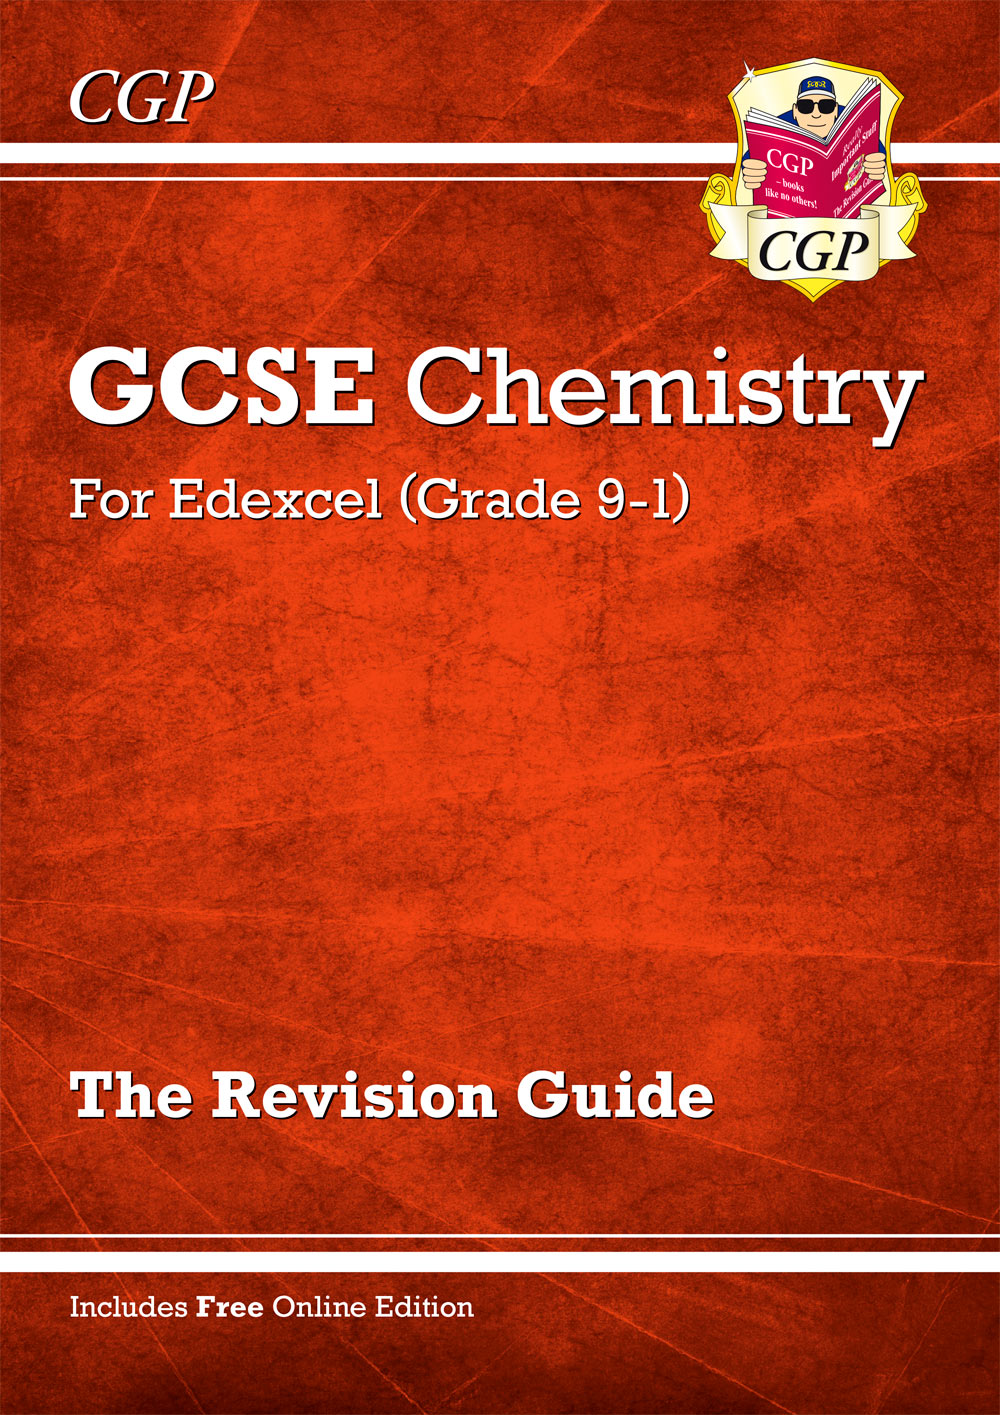 CER45 - Grade 9-1 GCSE Chemistry: Edexcel Revision Guide with Online Edition